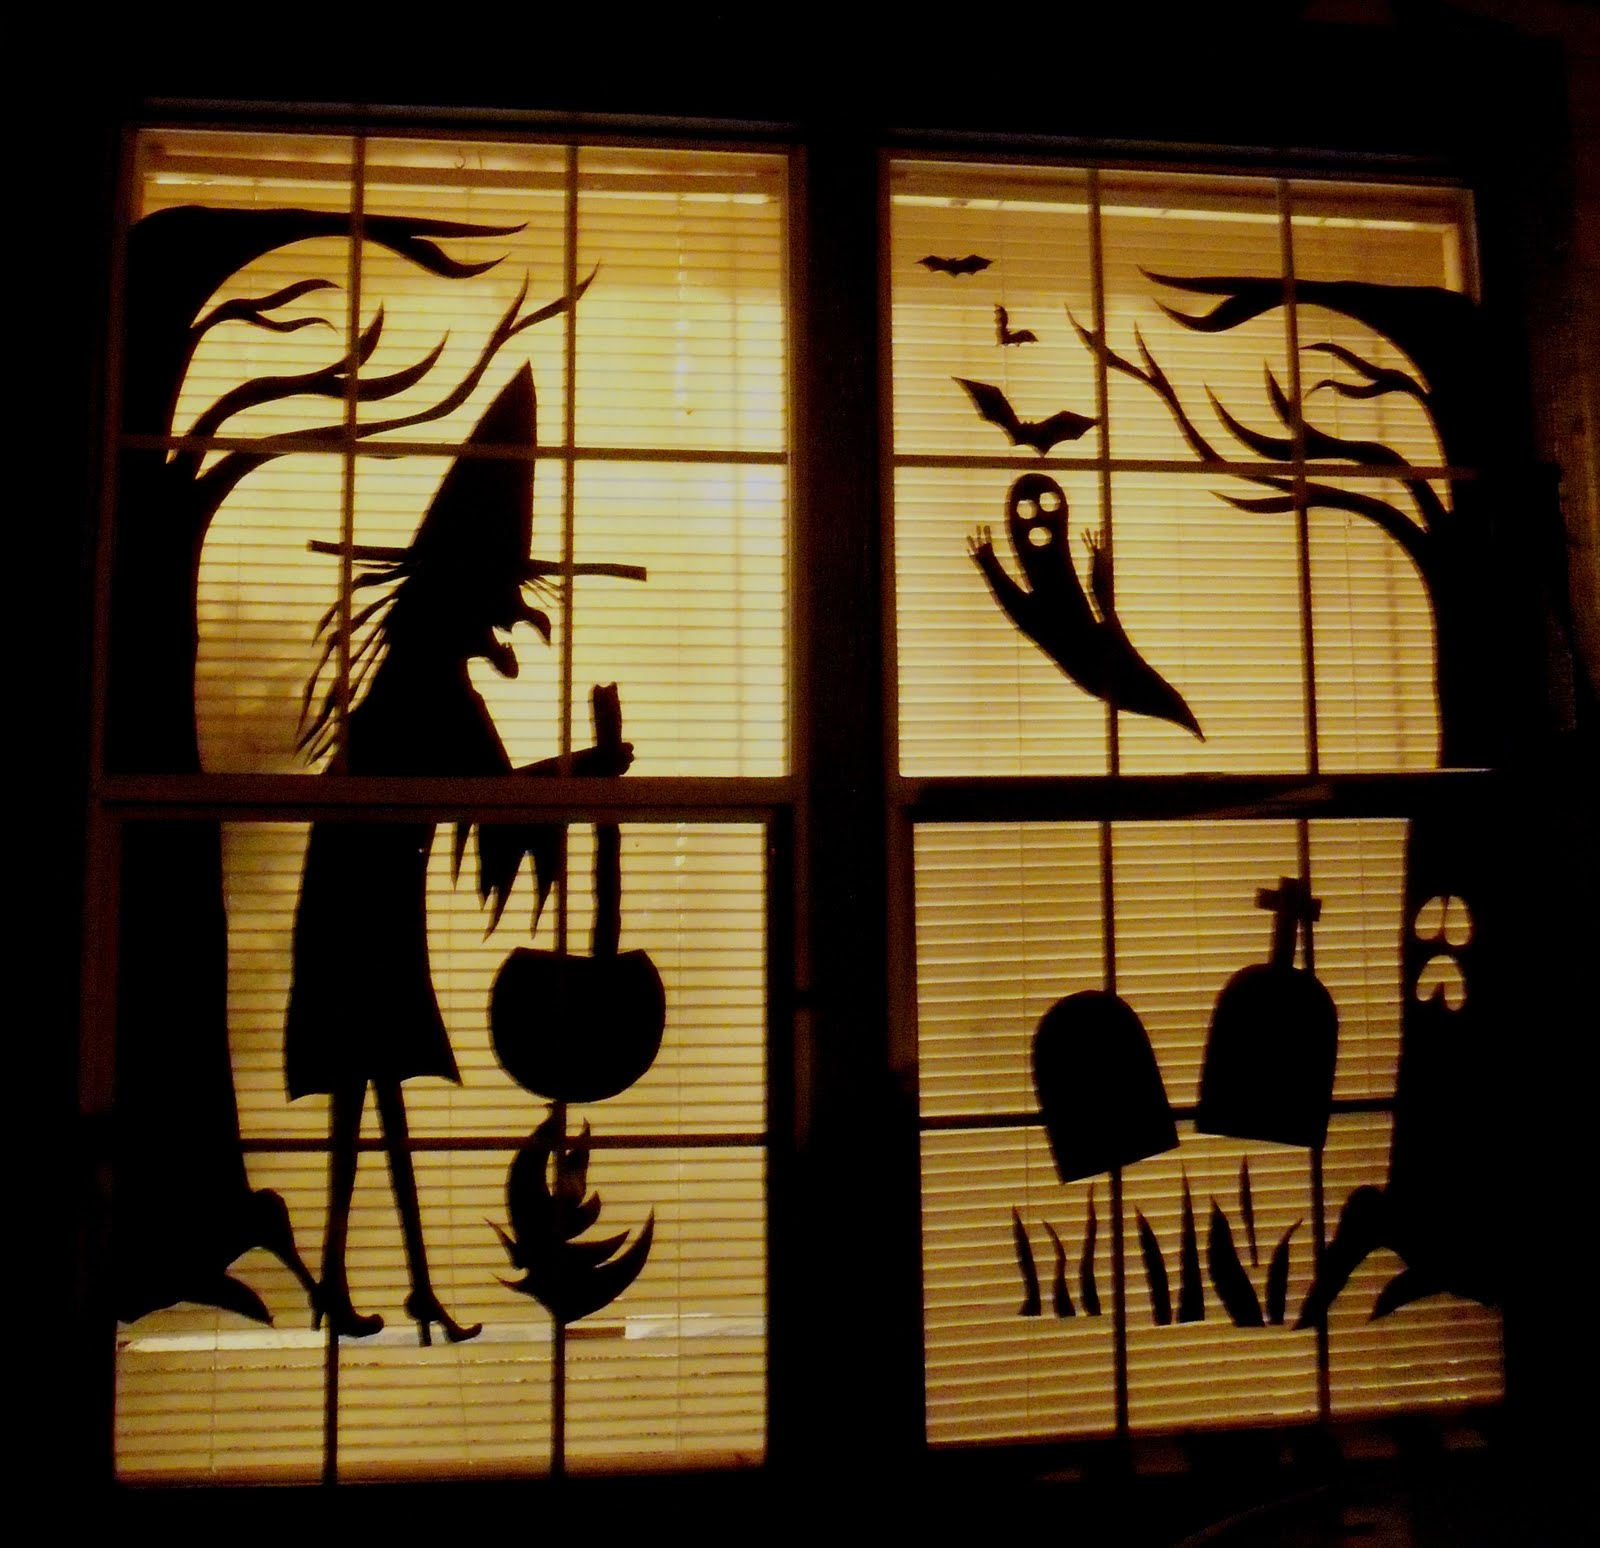 Halloween Window Decorations: Make The Best Of Things: So Cheap Halloween Fun Decor With